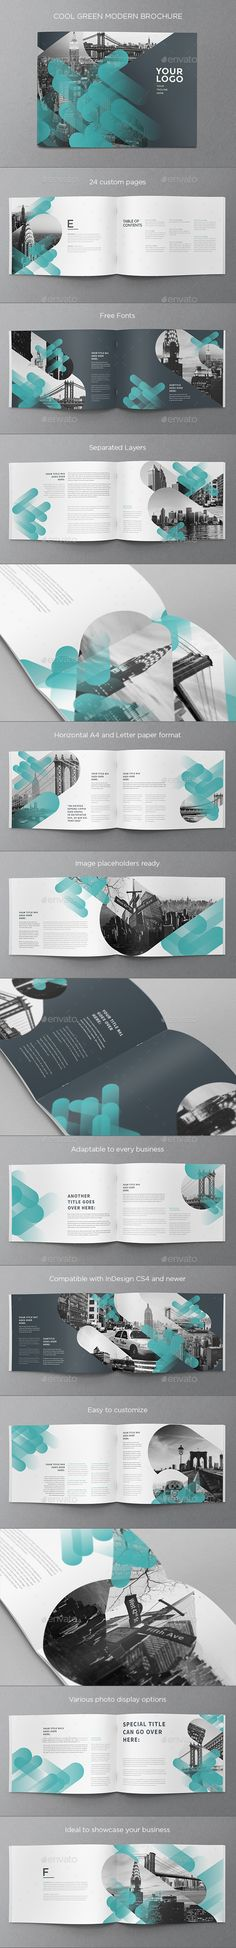 Cool Green Modern Brochure Template InDesign INDD. Download here: https://graphicriver.net/item/cool-green-modern-brochure/16988239?ref=ksioks